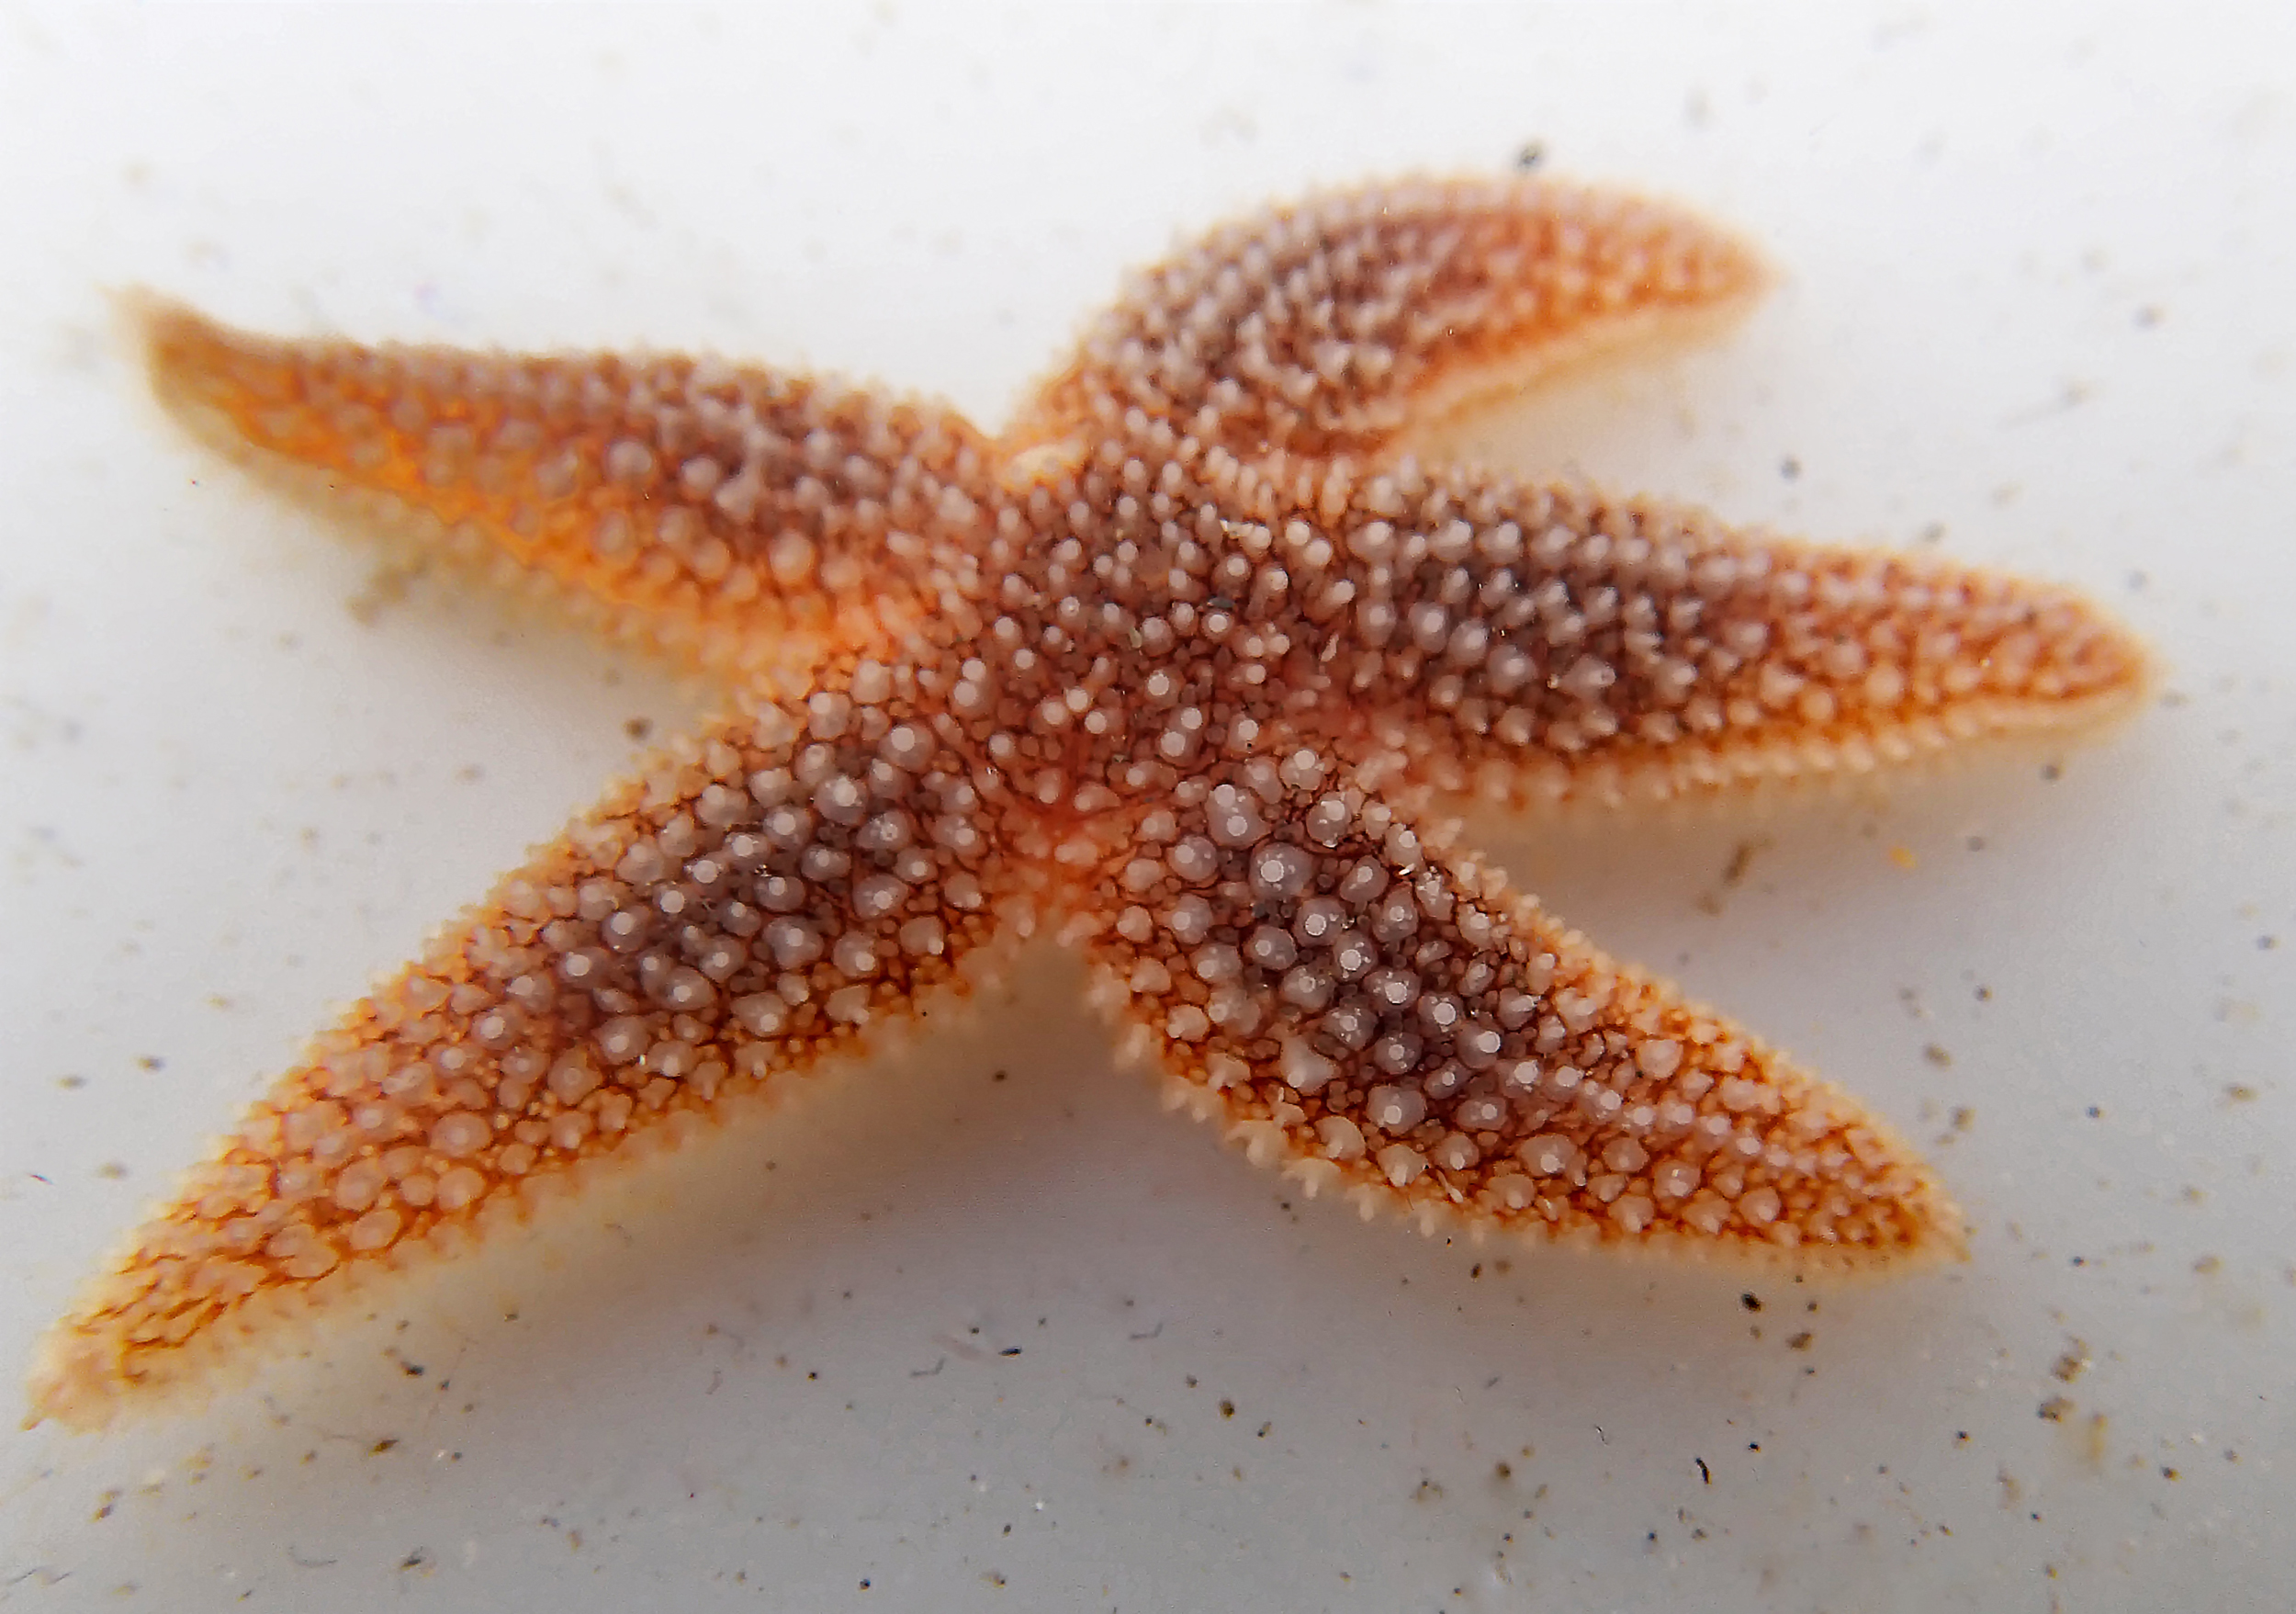 One of the common starfish found - photo courtesy of Liz Barker